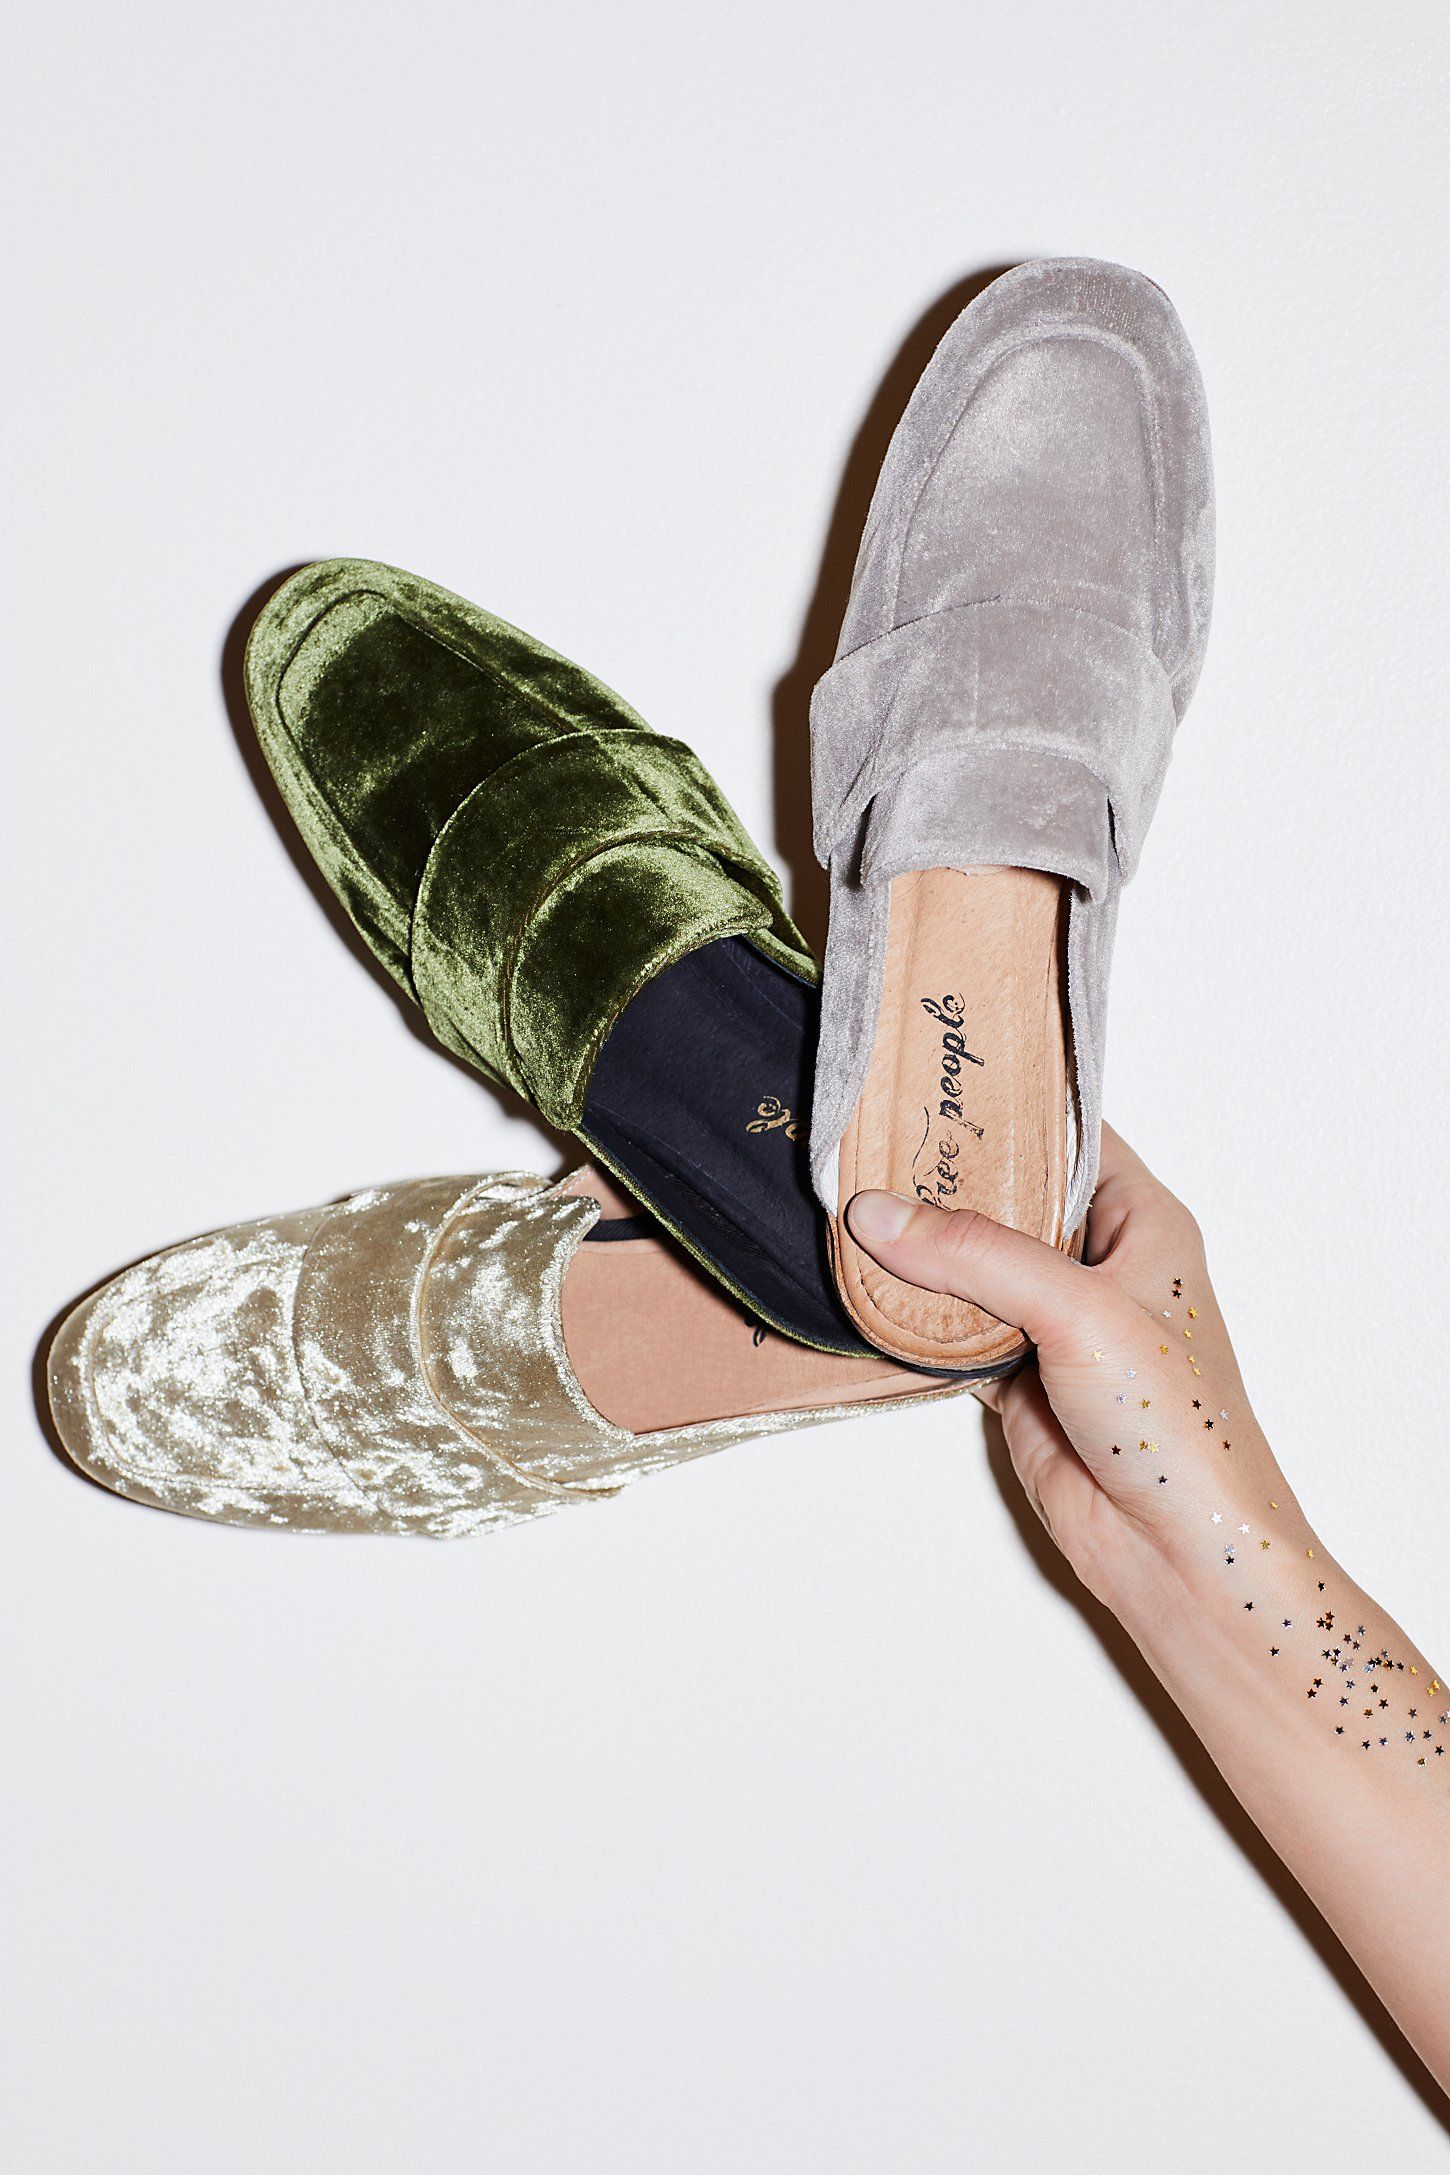 c2b1c1f4157 Shop our Velvet At Ease Loafer at FreePeople.com. Share style pics with FP